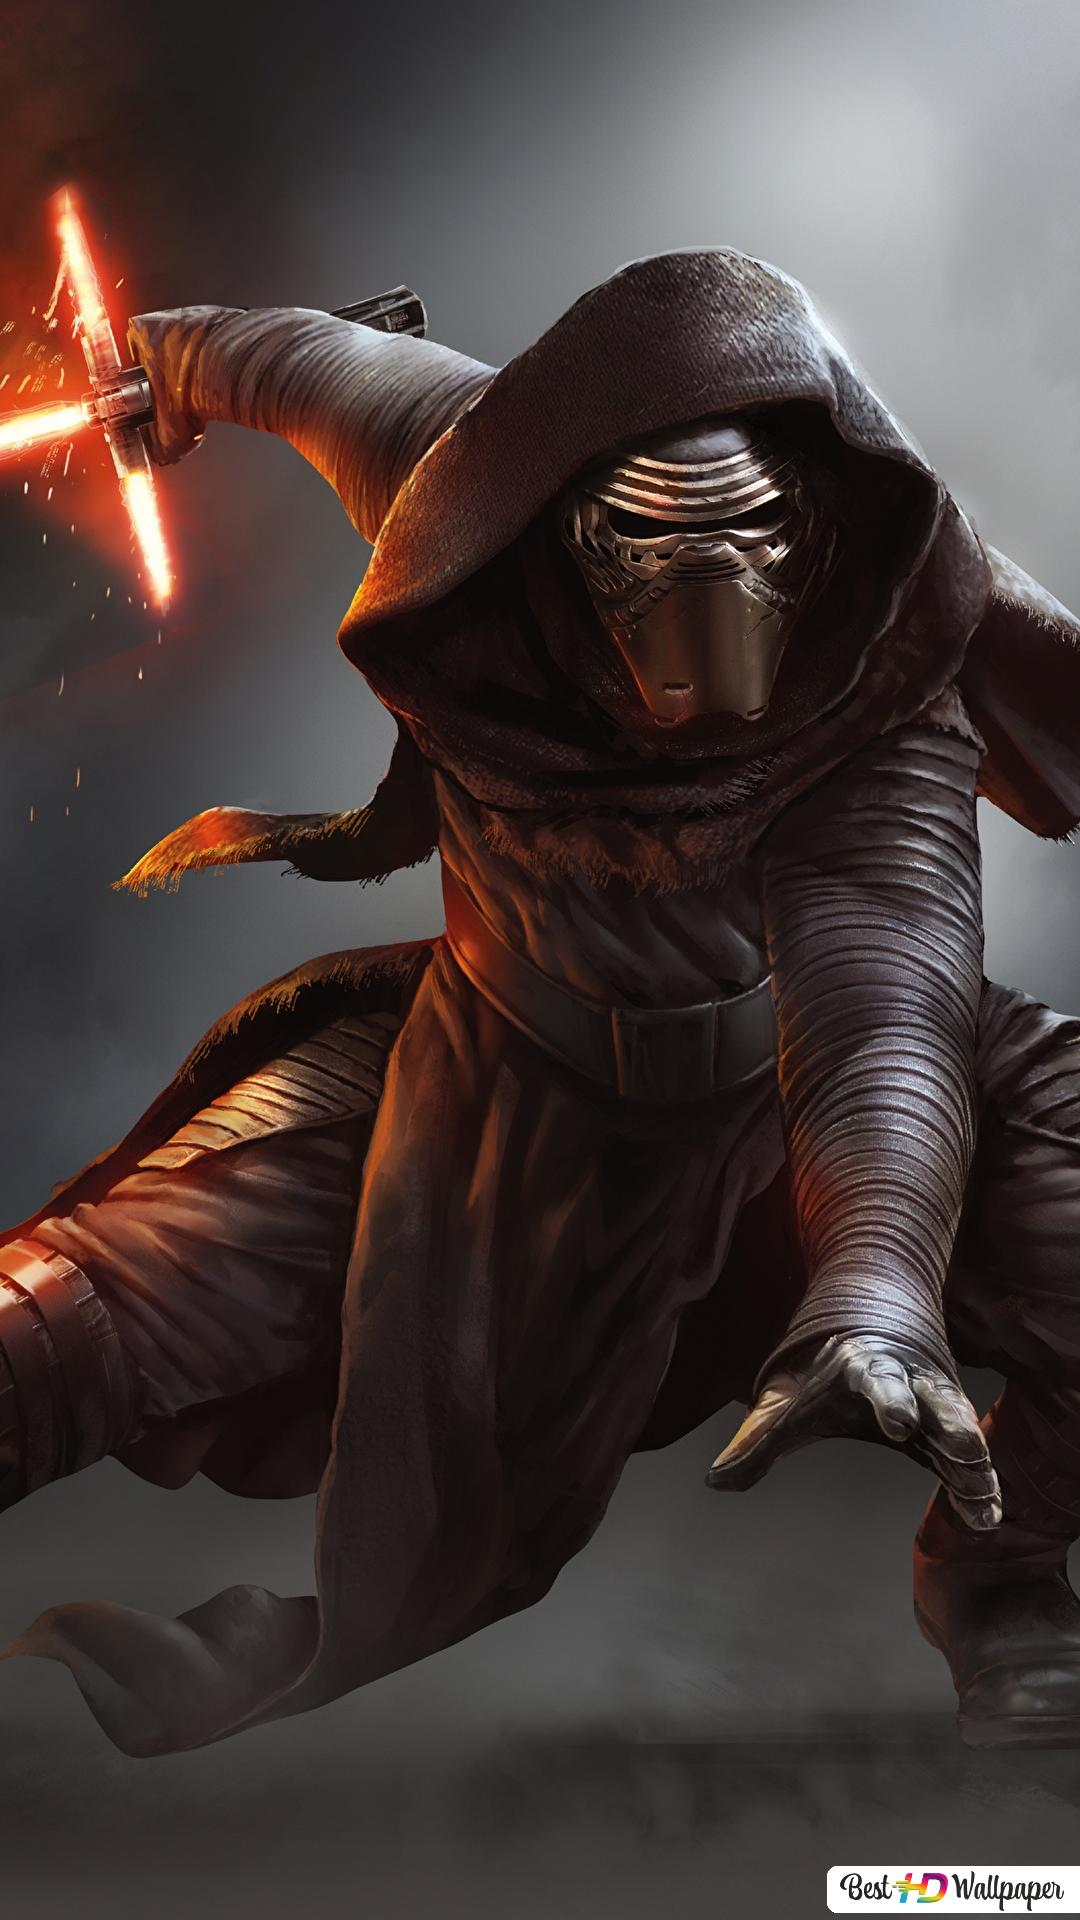 Star Wars The Force Awakens Movie Kylo Ren With Lightsaber Hd Wallpaper Download